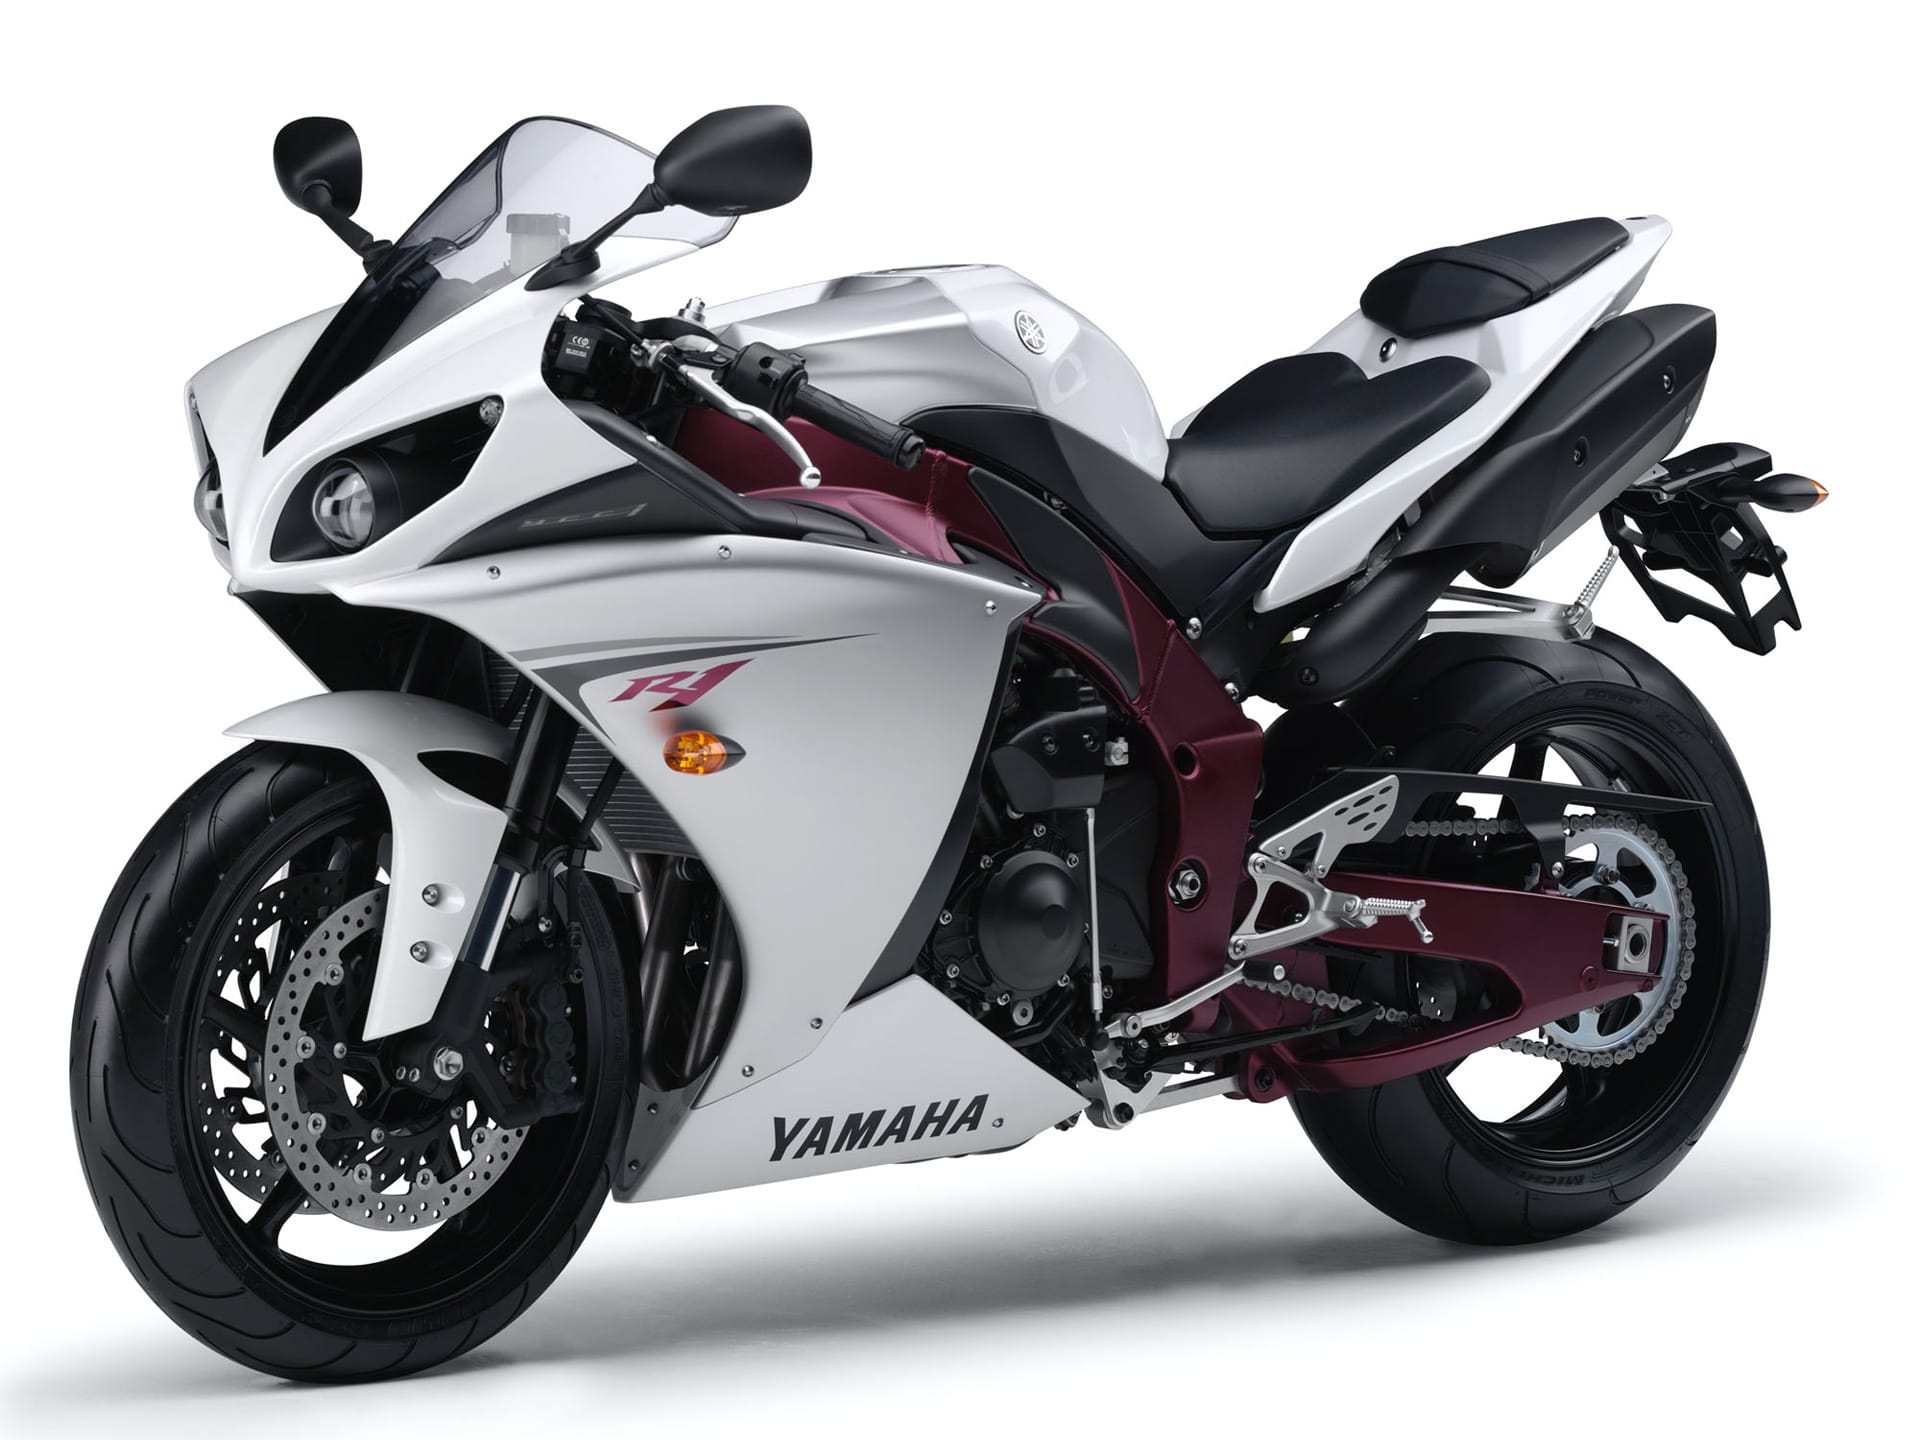 Yamaha YZF-R1 2012 widescreen wallpapers